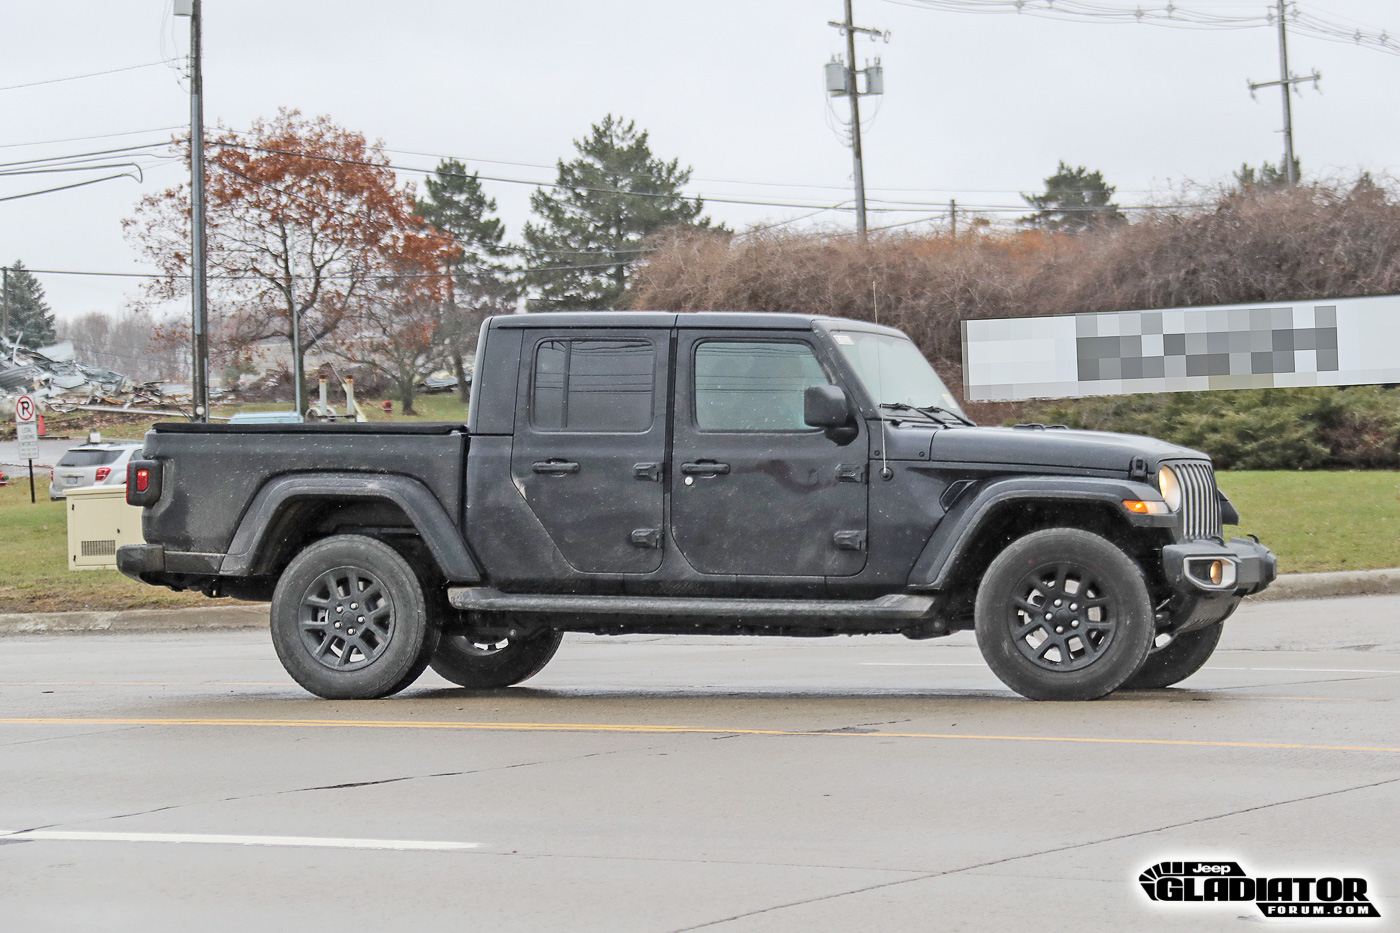 2020-Jeep-Gladiator-JT-Pickup-Truck-Spotted-Undisguised-5.jpg